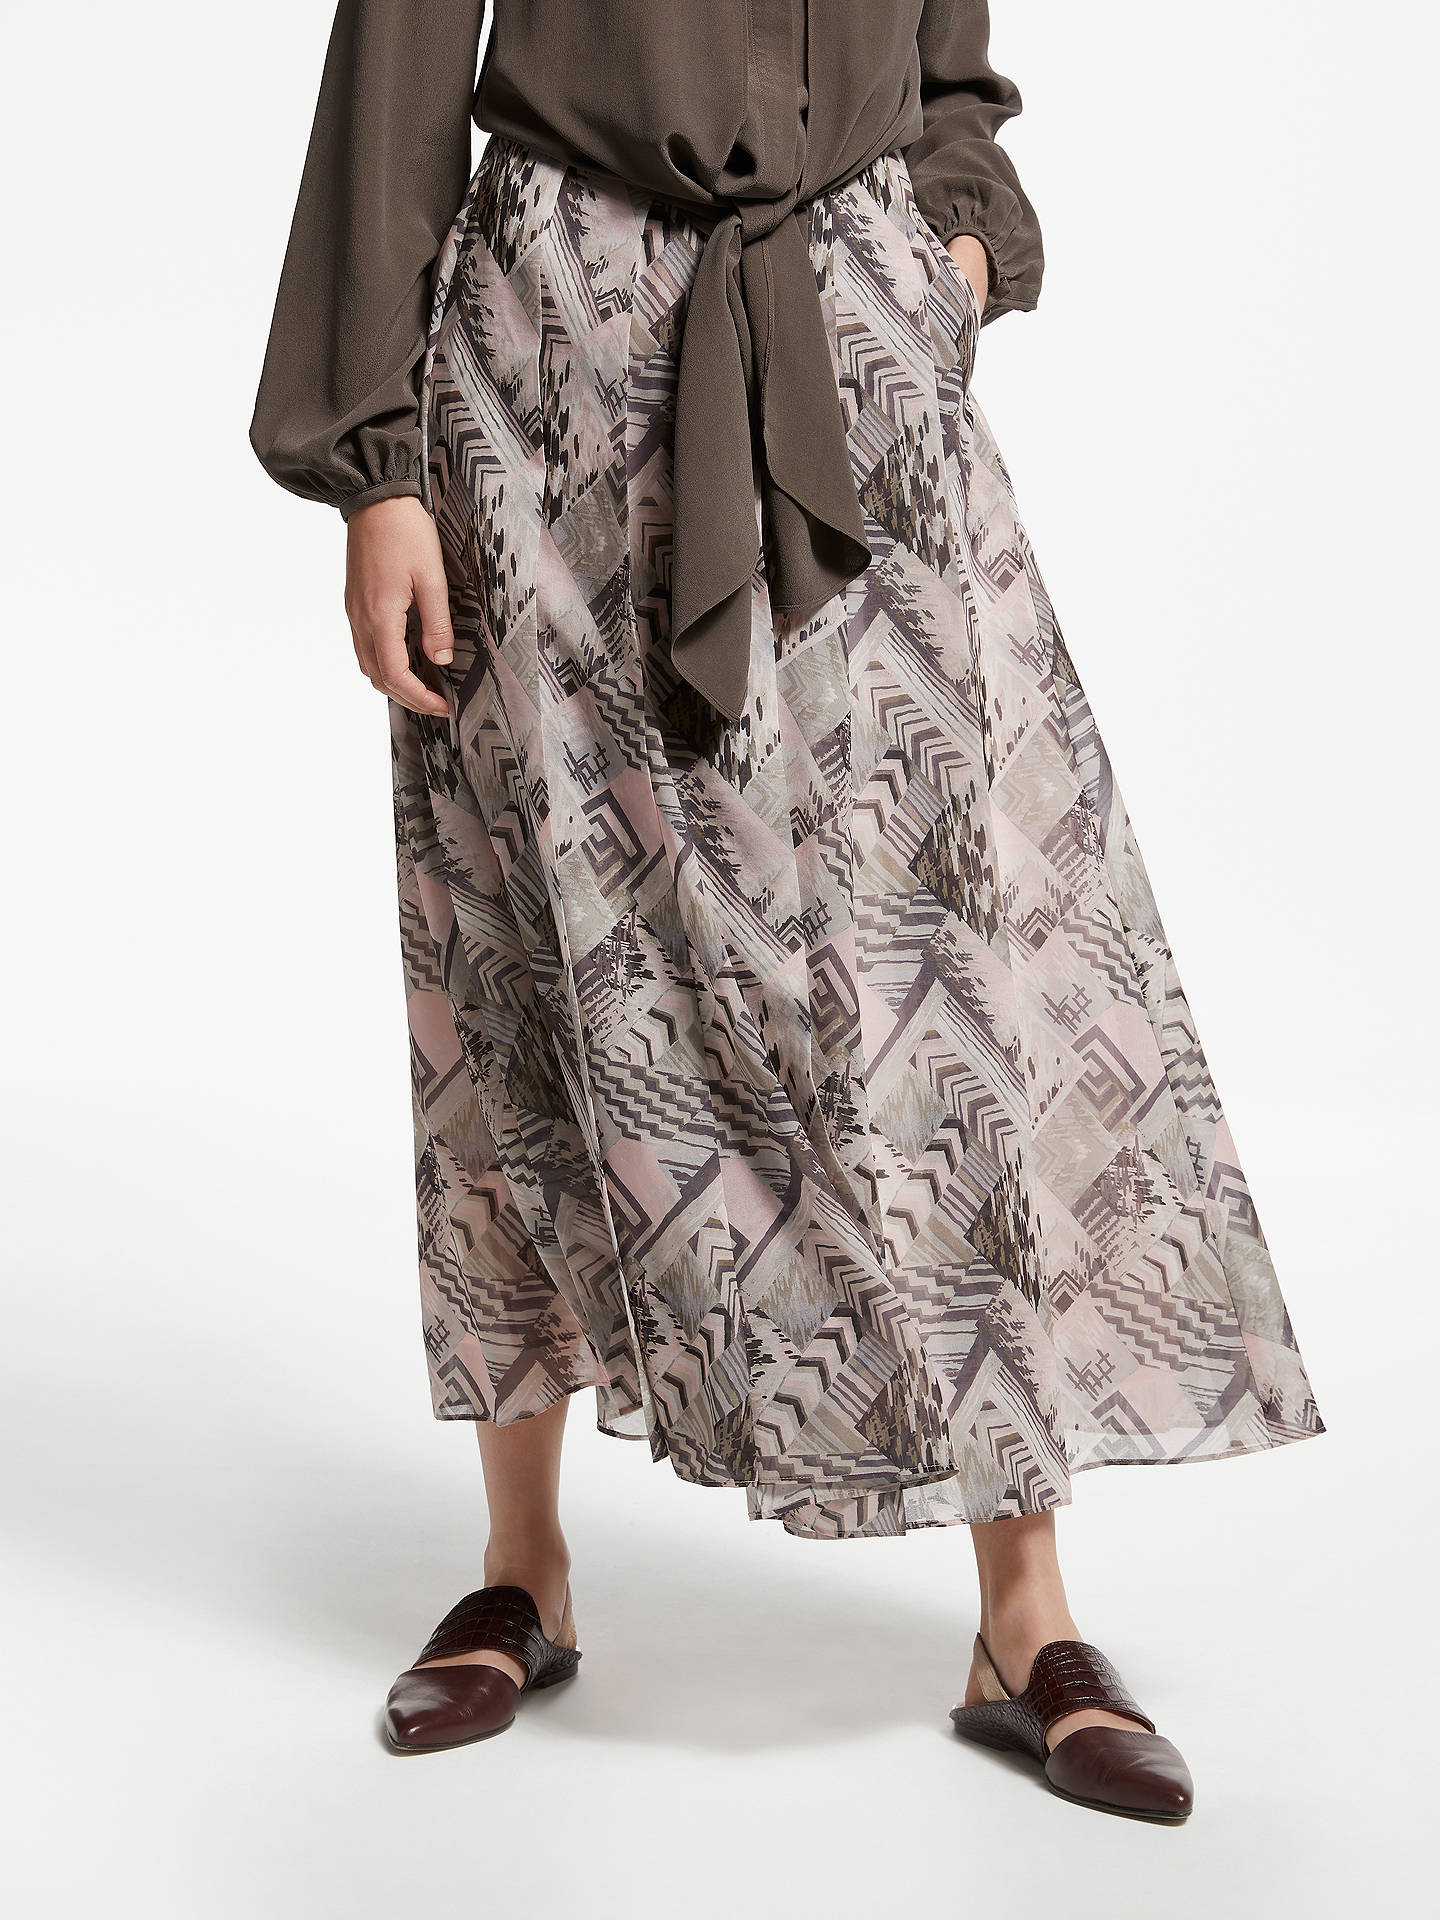 buymodern rarity archive print box pleat midi skirt multi 8 online at johnlewis